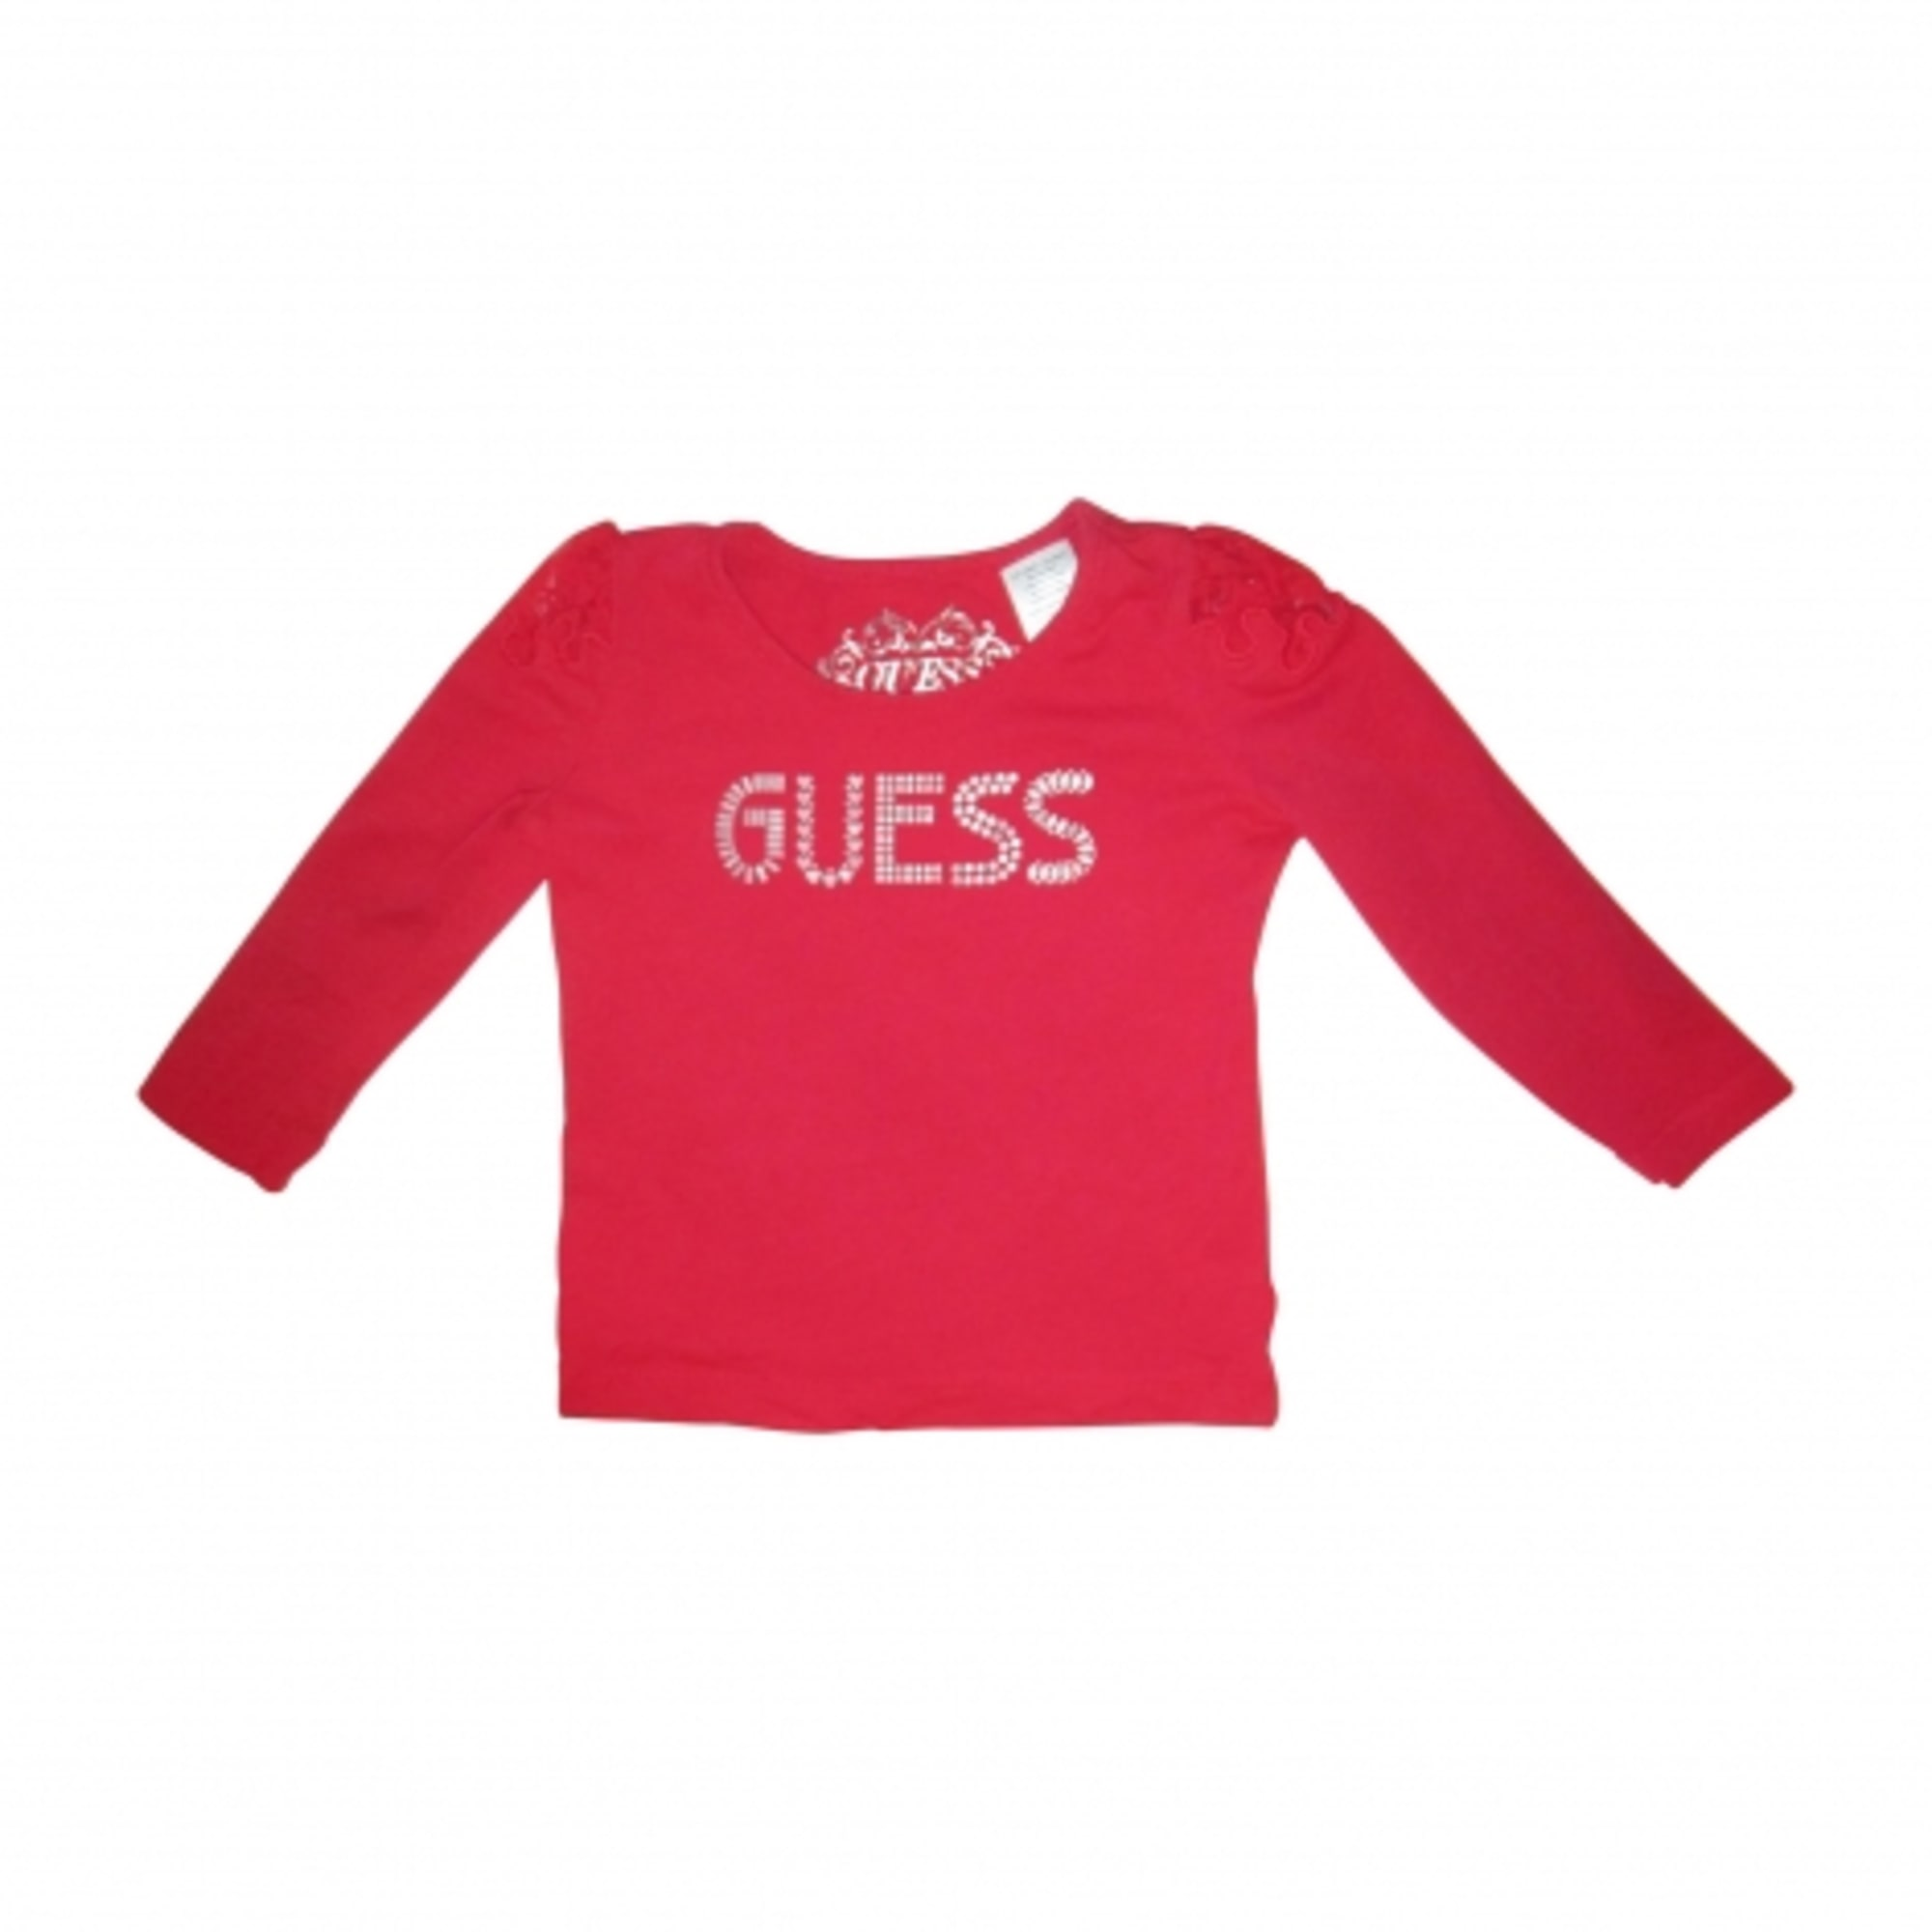 Top, Tee-shirt GUESS Rouge, bordeaux